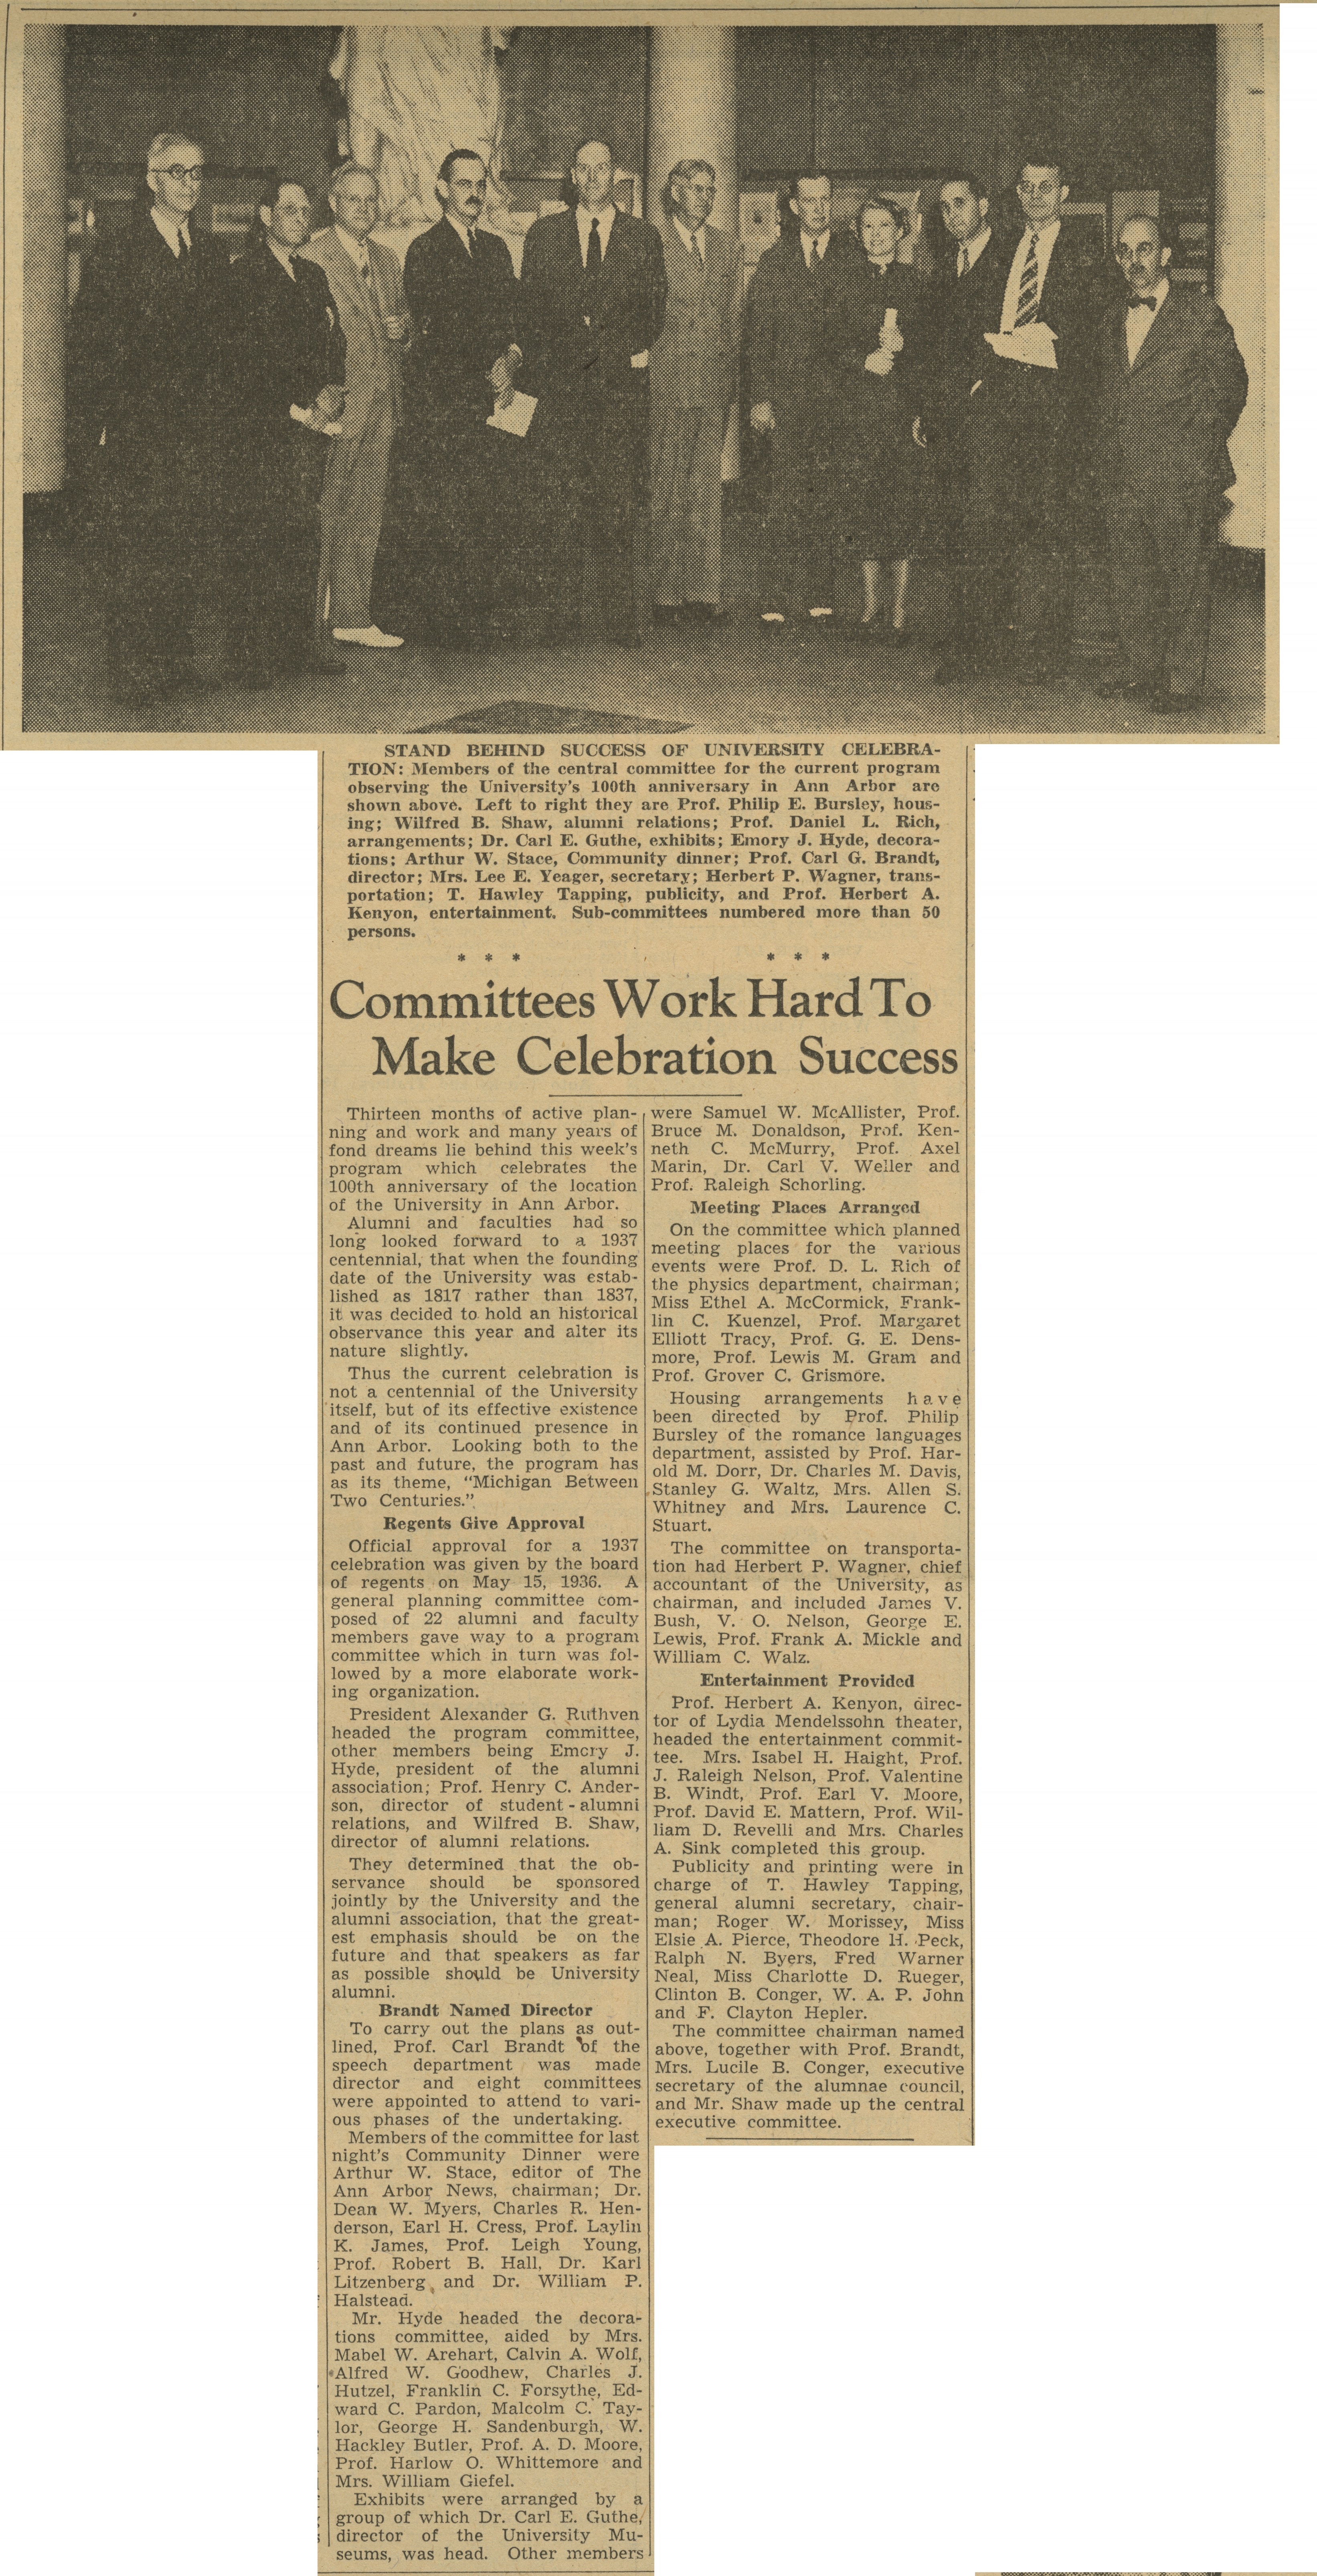 Committees Work Hard to Make Celebration Success, June 1937 image